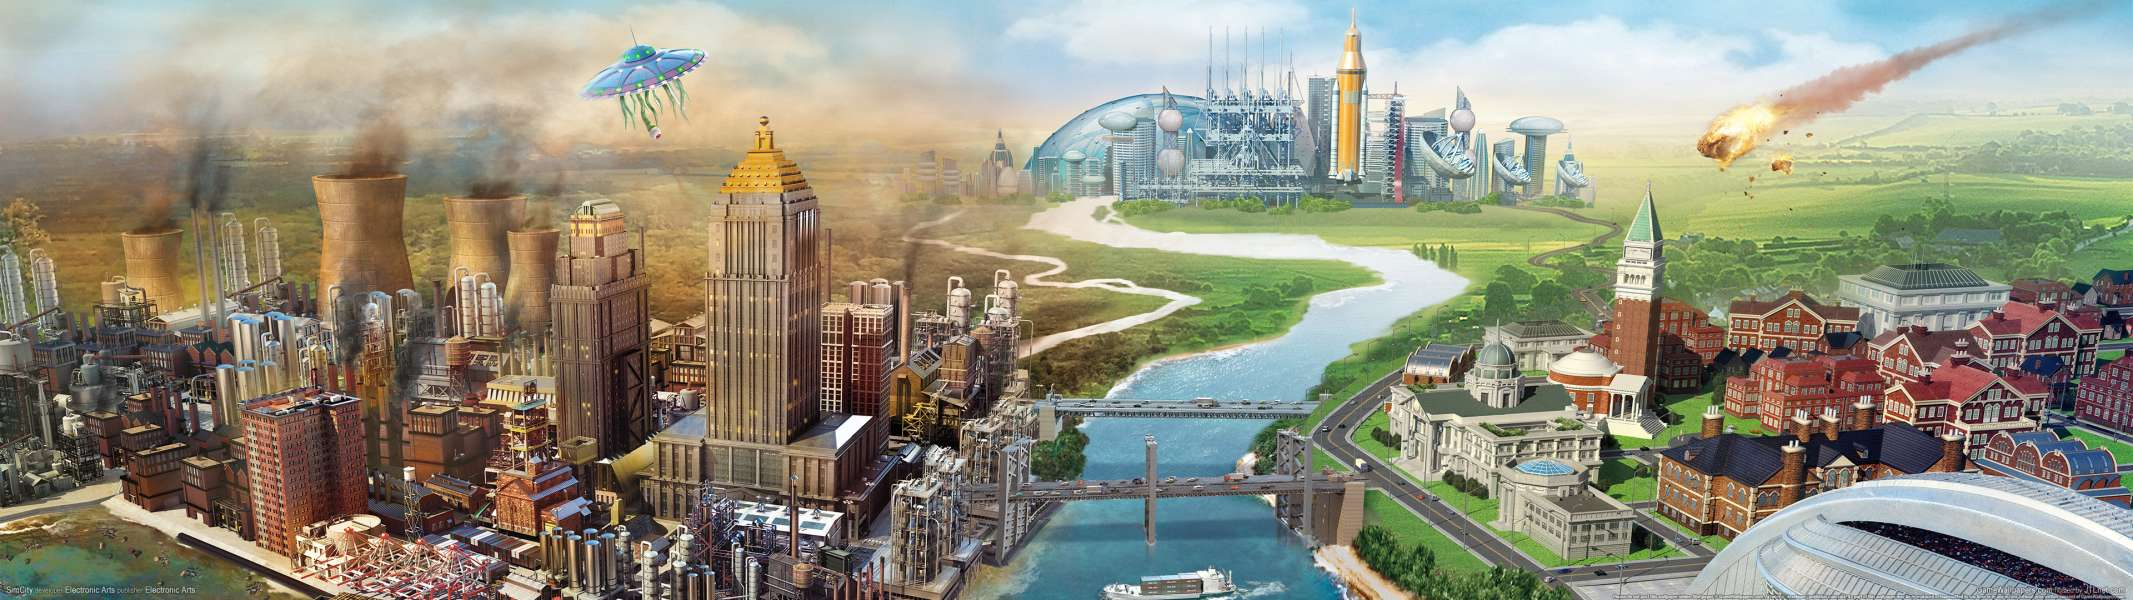 SimCity dual screen wallpaper or background